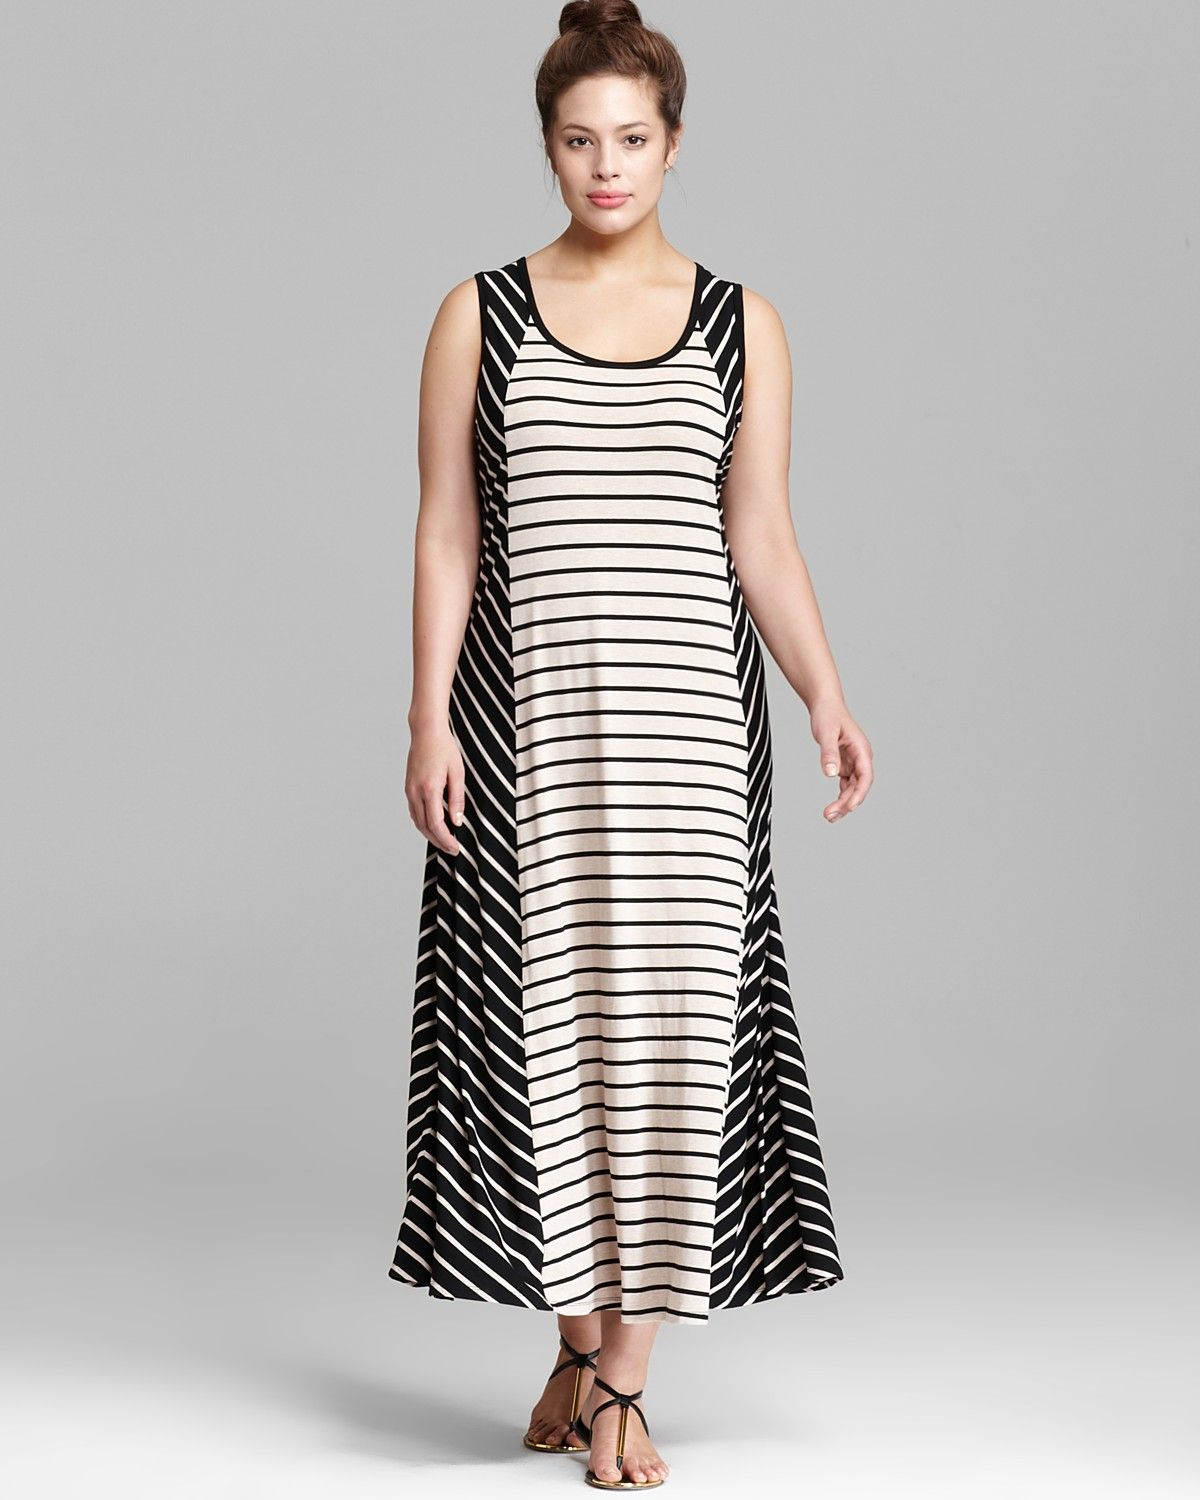 c7149c5cd74 Calvin Klein Plus Bias Cut Maxi Dress